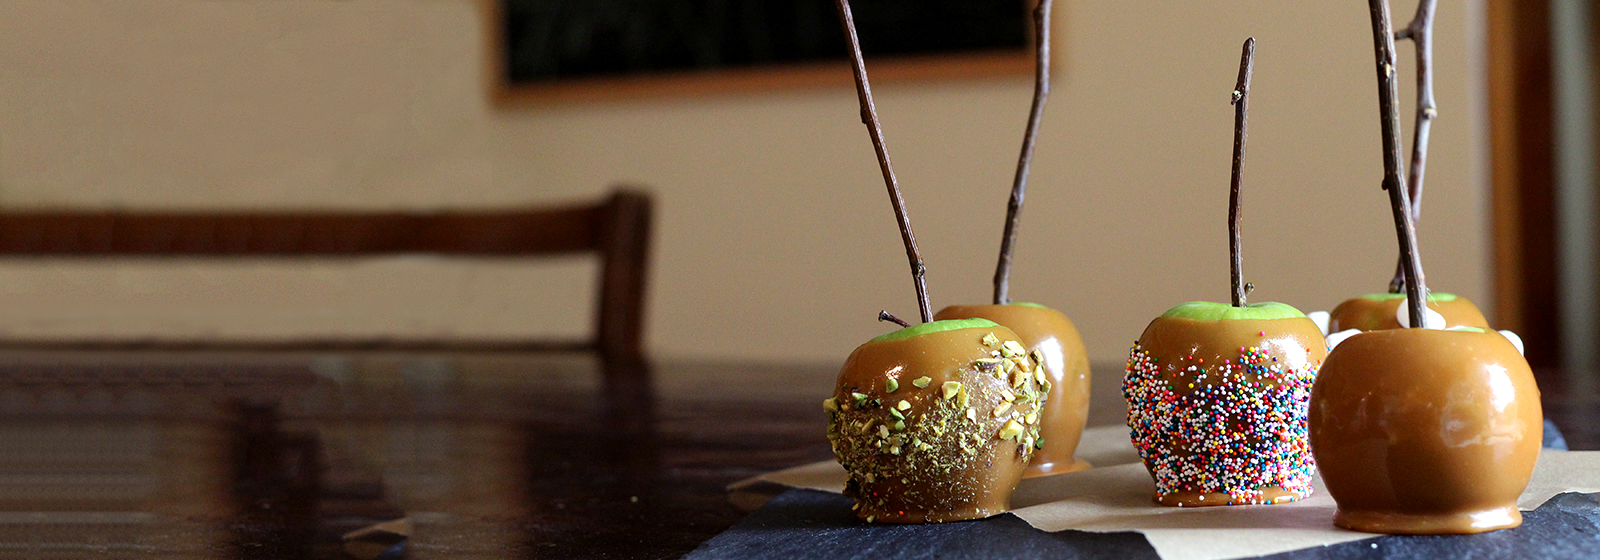 Recipes Desserts Banner Caramel Apples 1600X560Px